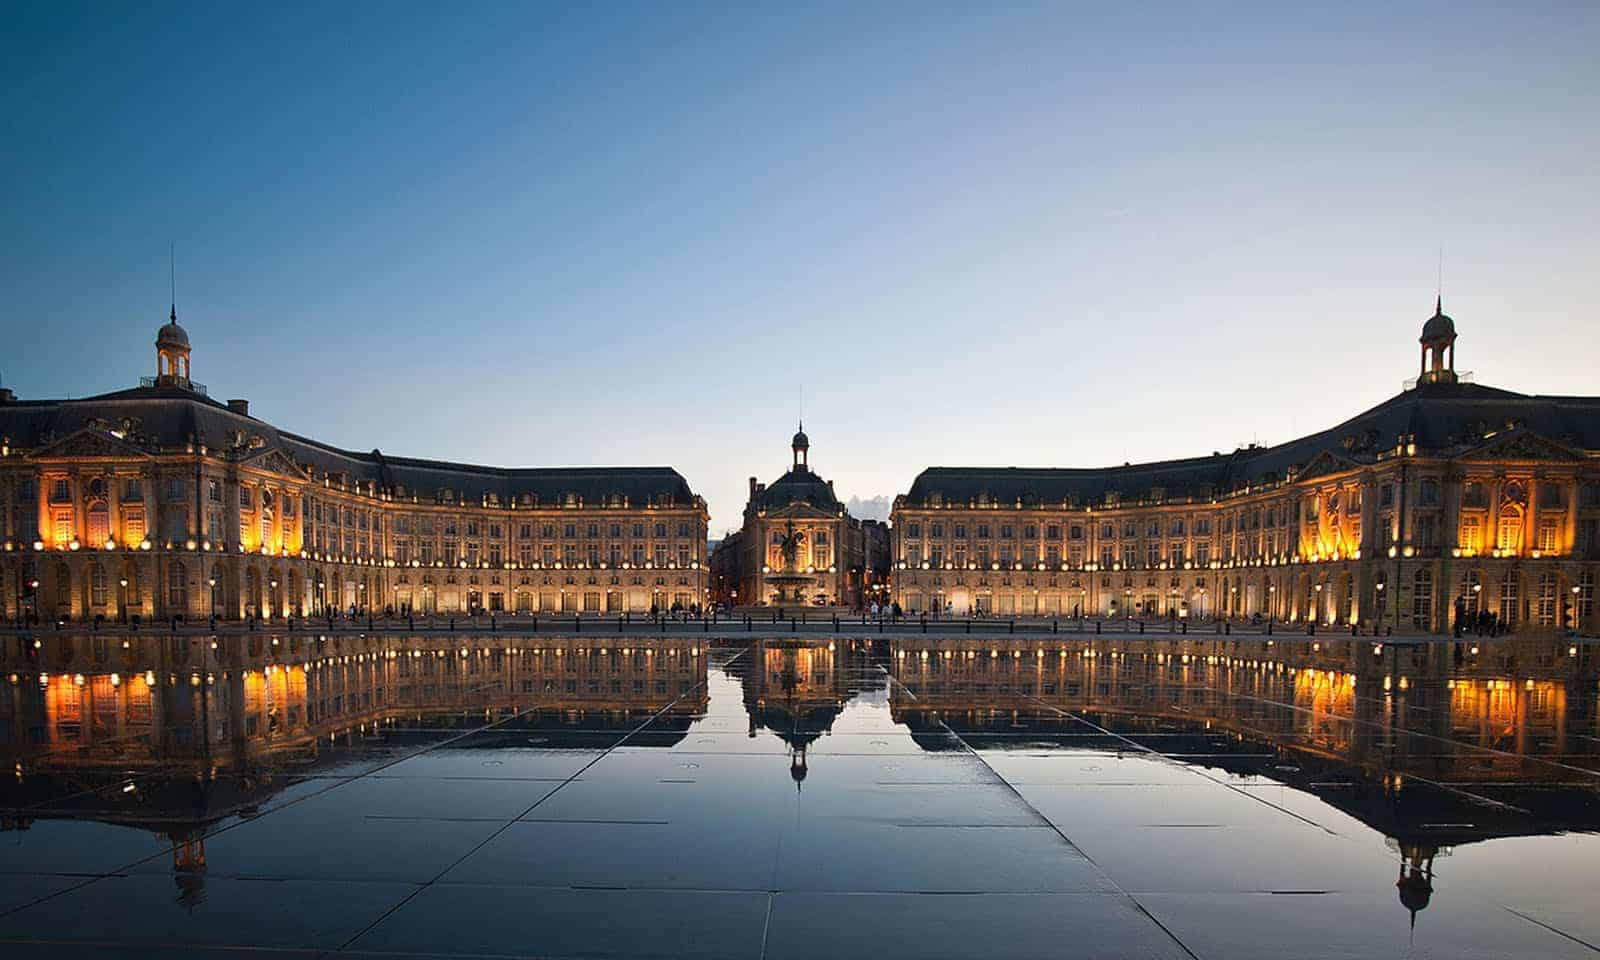 Please join me on an Unforgettable Trip to Bordeaux May 4 th to May 11 th 2020 with Tour de Forks